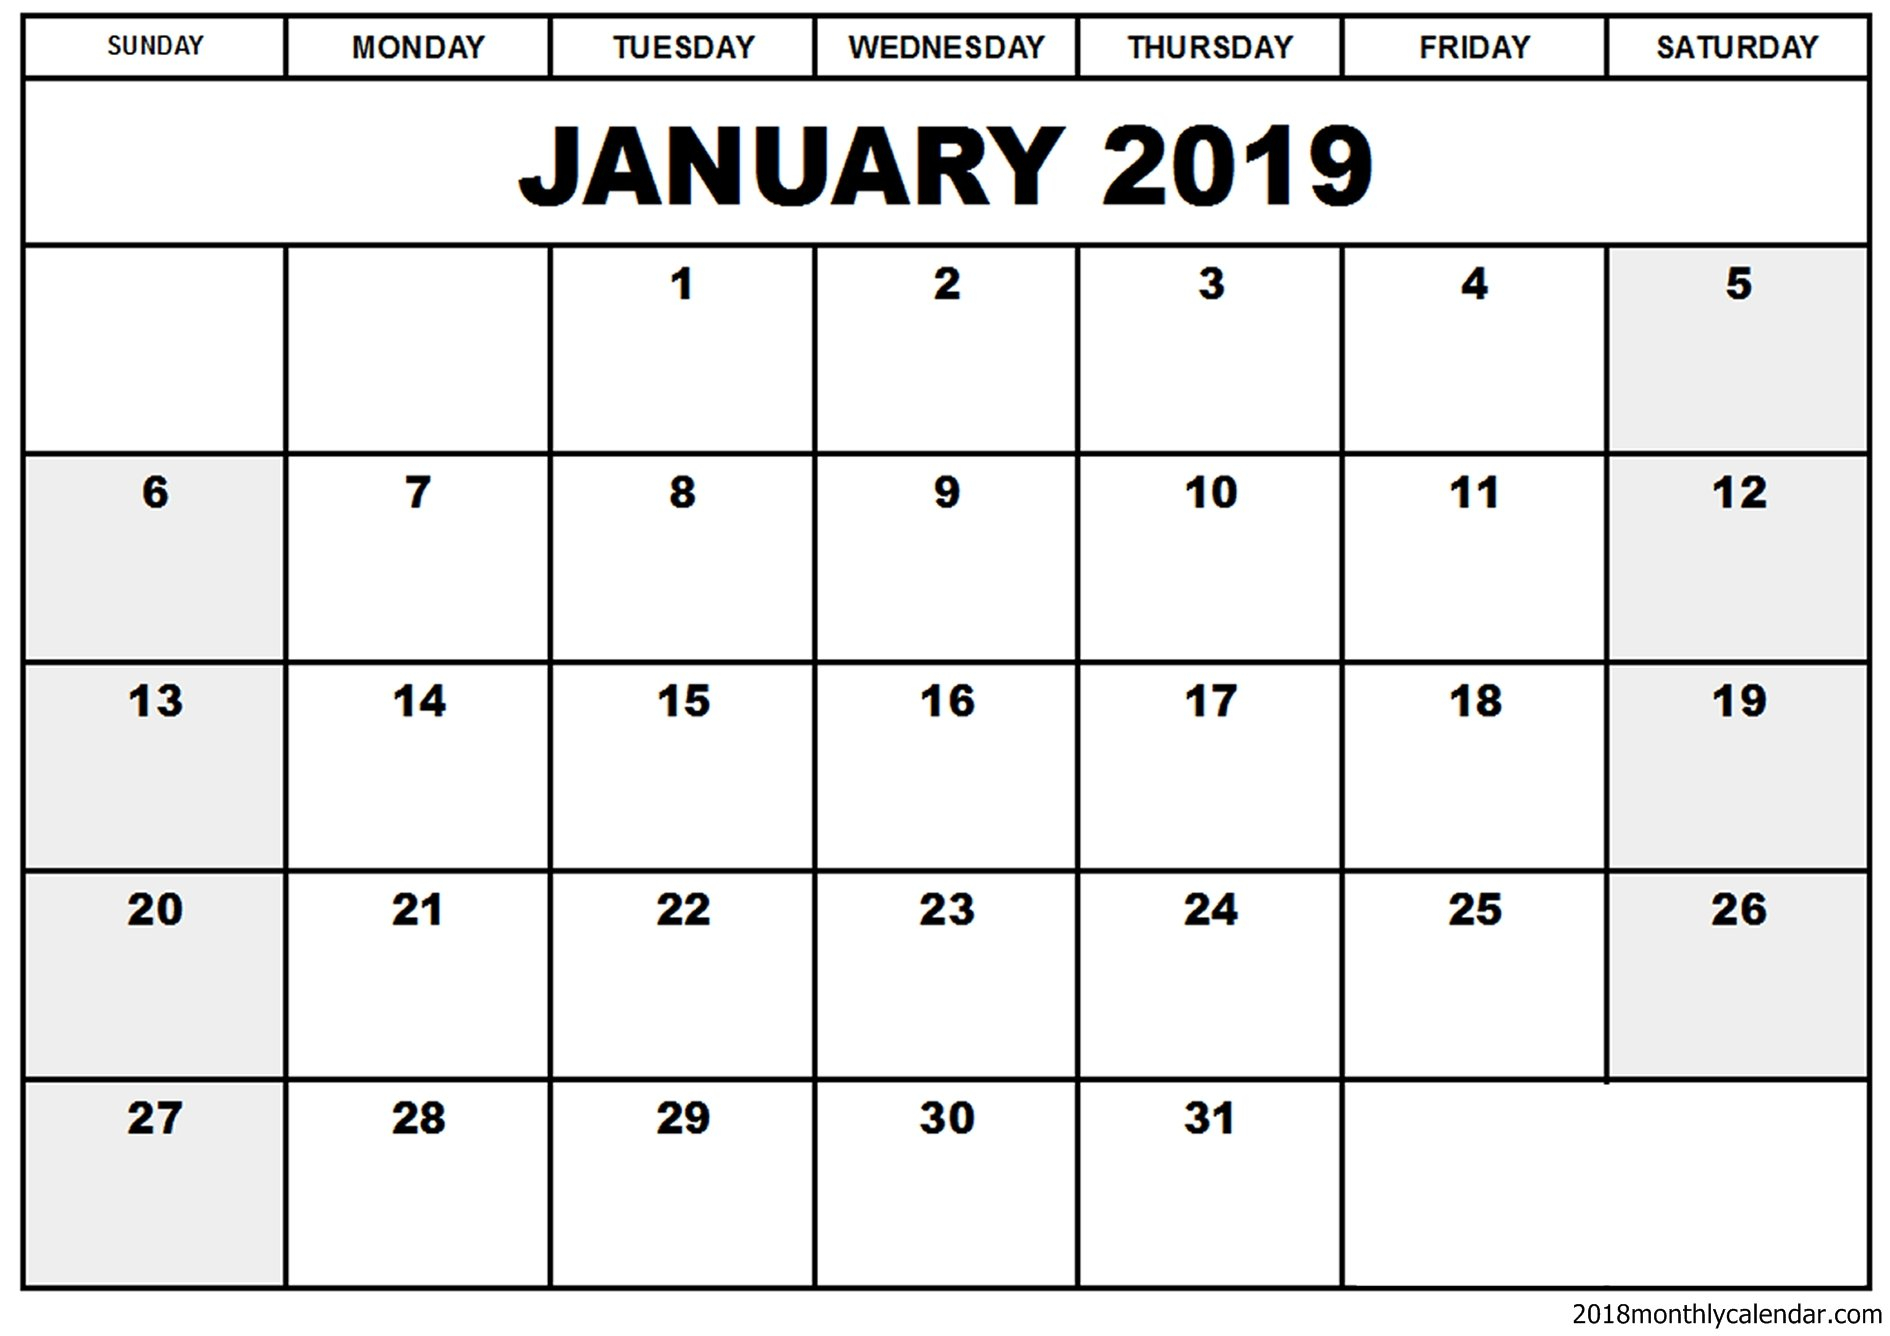 Download January 2019 Calendar – Blank & Editable Calendar 2019 Editable